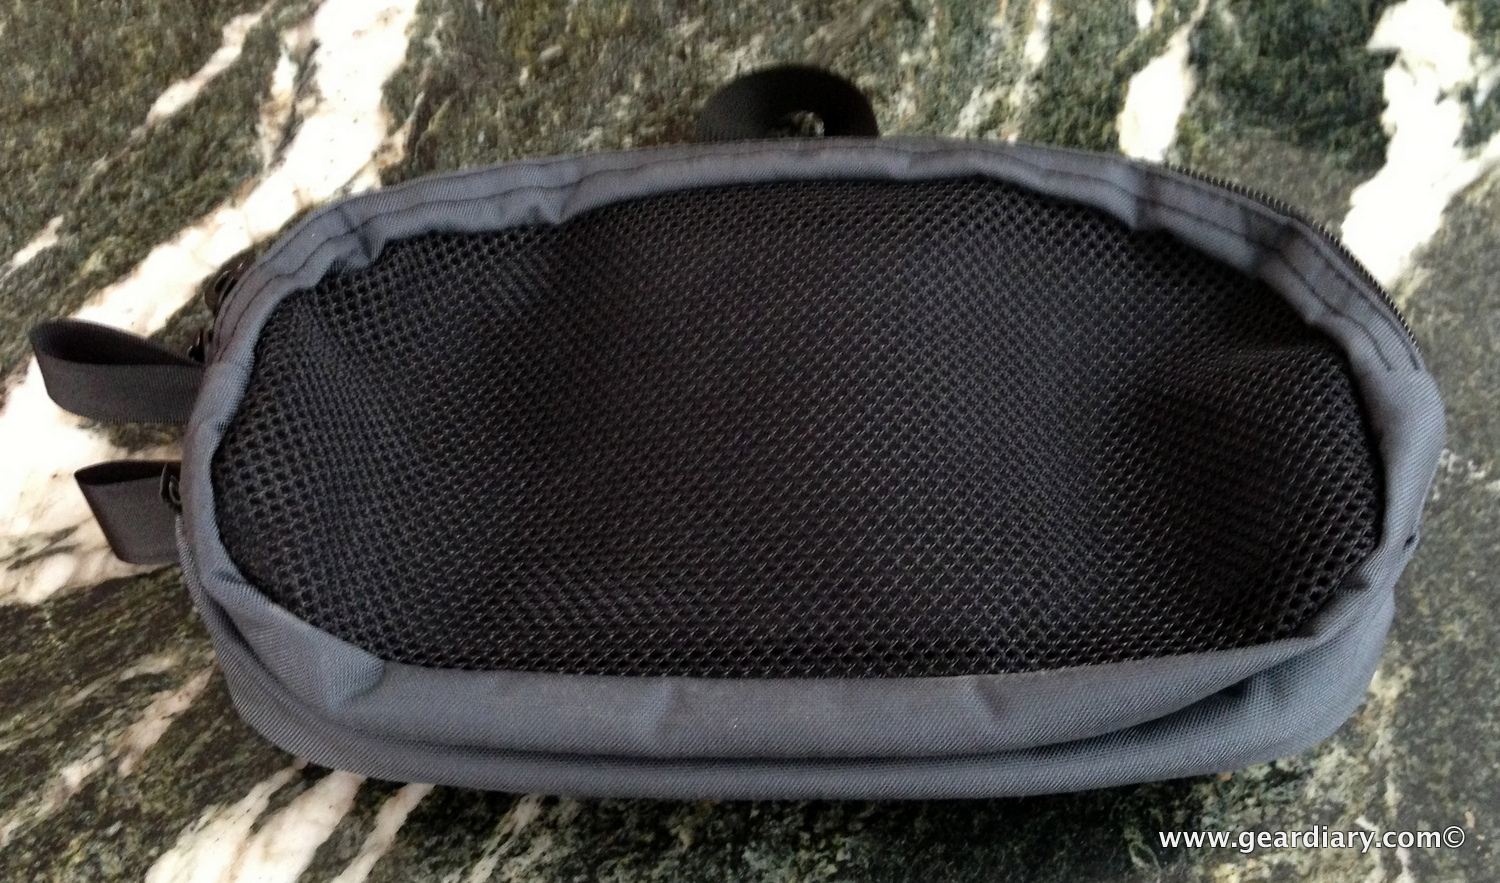 GearDiary Tom Bihn Brain Bag with Camera I-O and Accessories Review